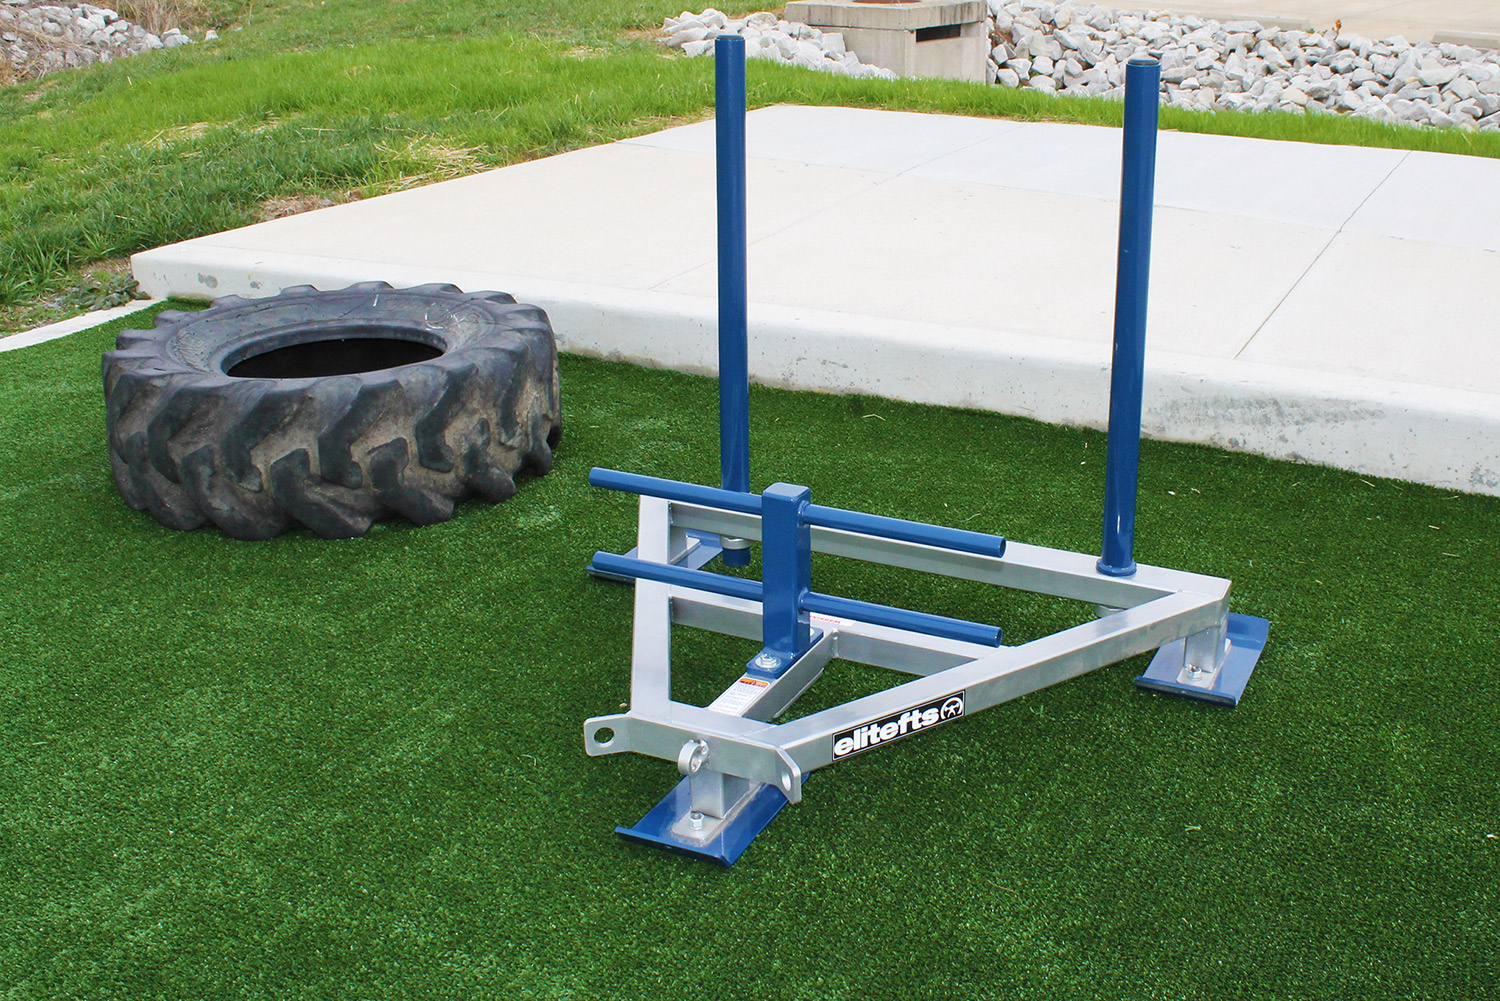 Outdoor fitness area with equipment.